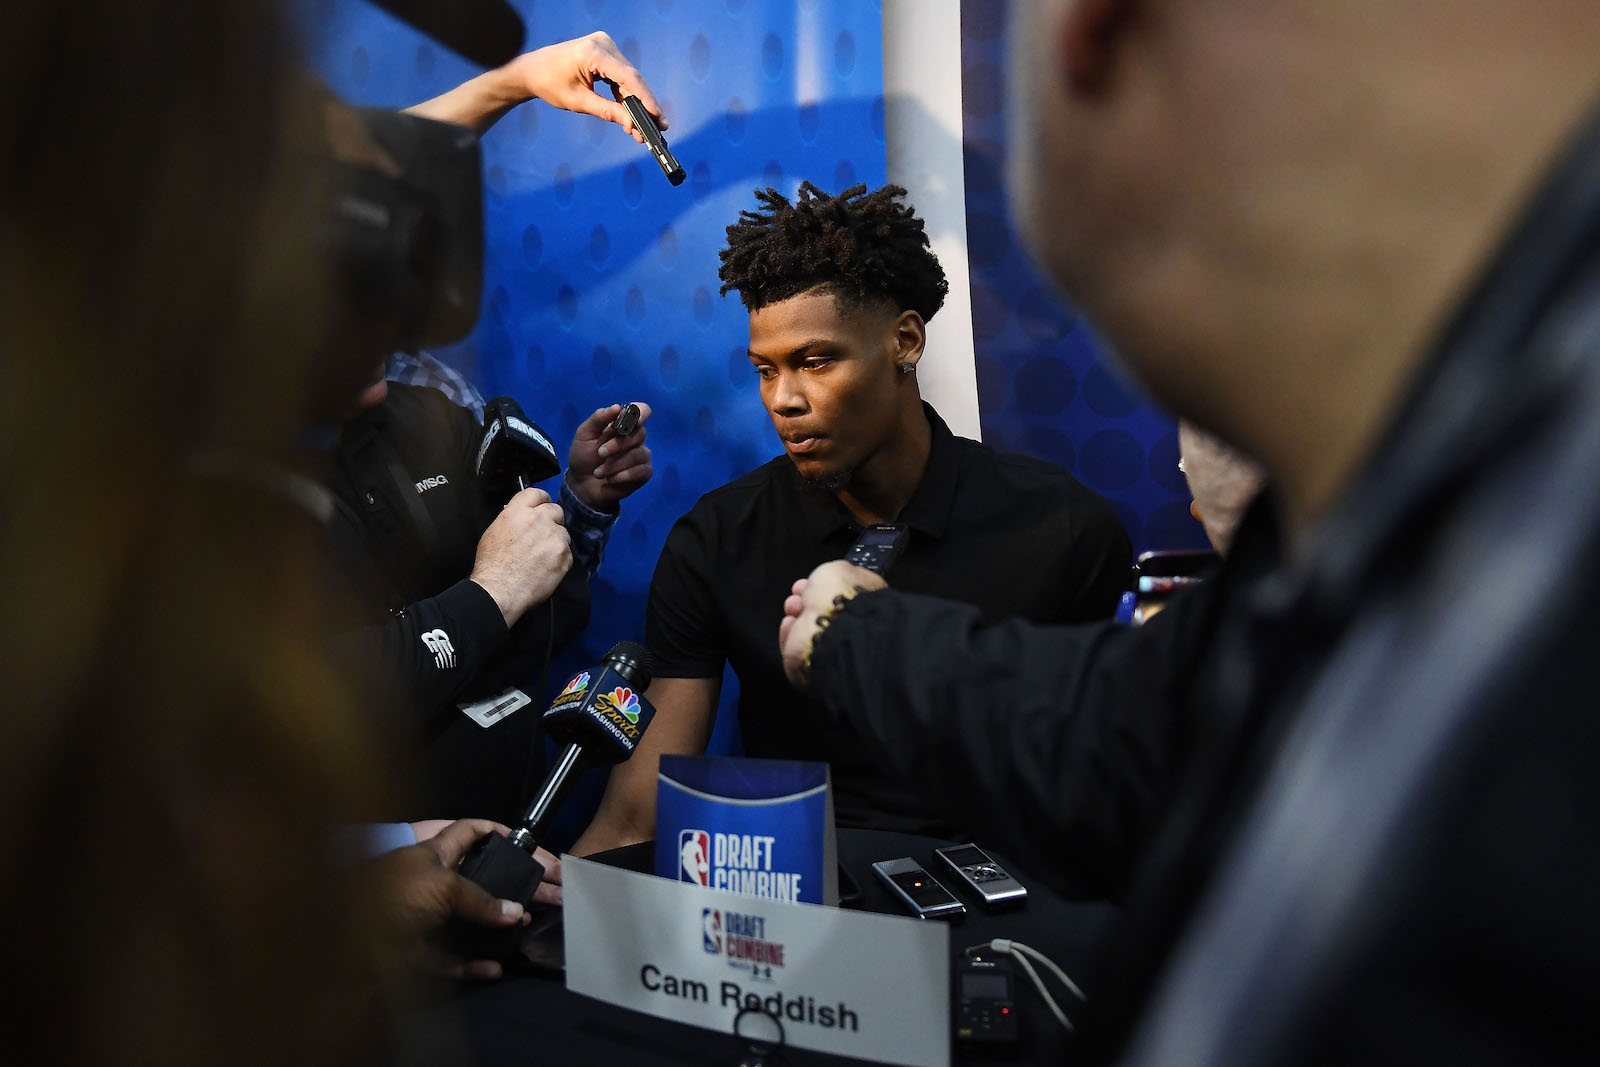 Cam Reddish speaks with the media during Day One of the NBA Draft Combine at Quest MultiSport Complex on May 16, 2019 in Chicago, Illinois.